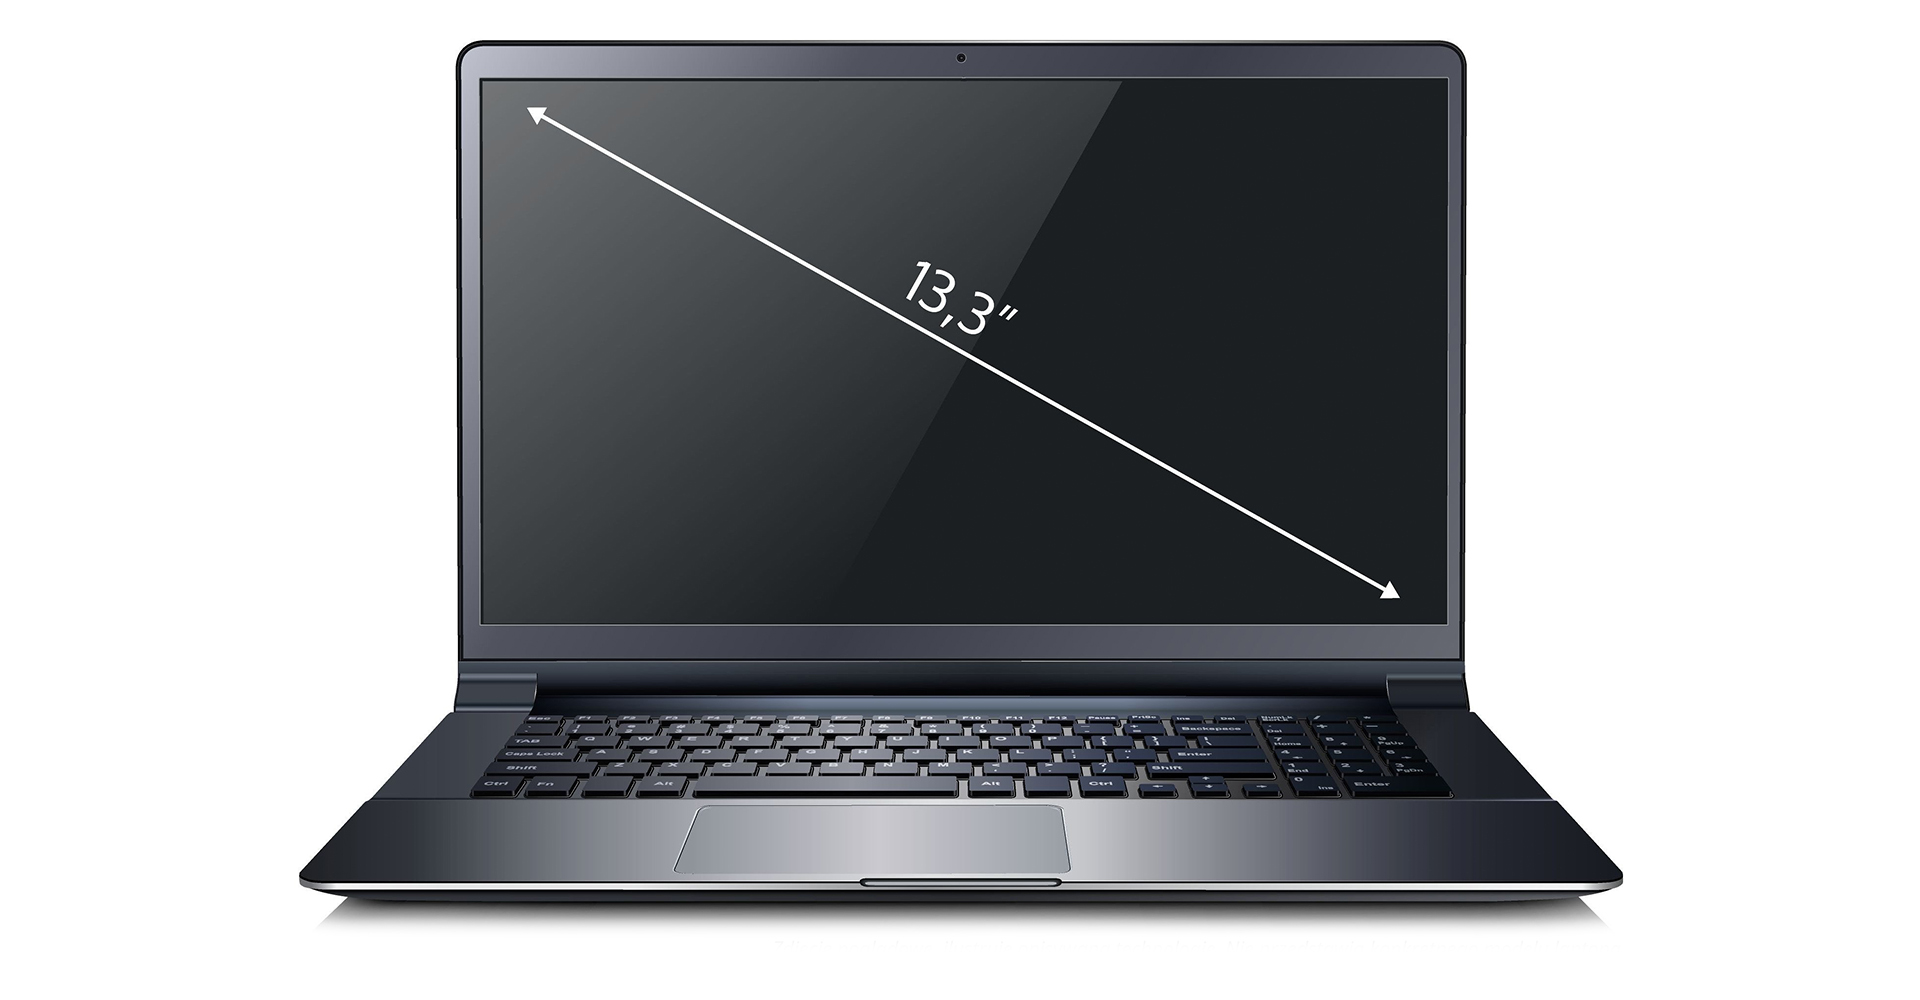 HP EliteBook 735 G5 (3UN62EA)                             13.3-tollise diagonaaliga